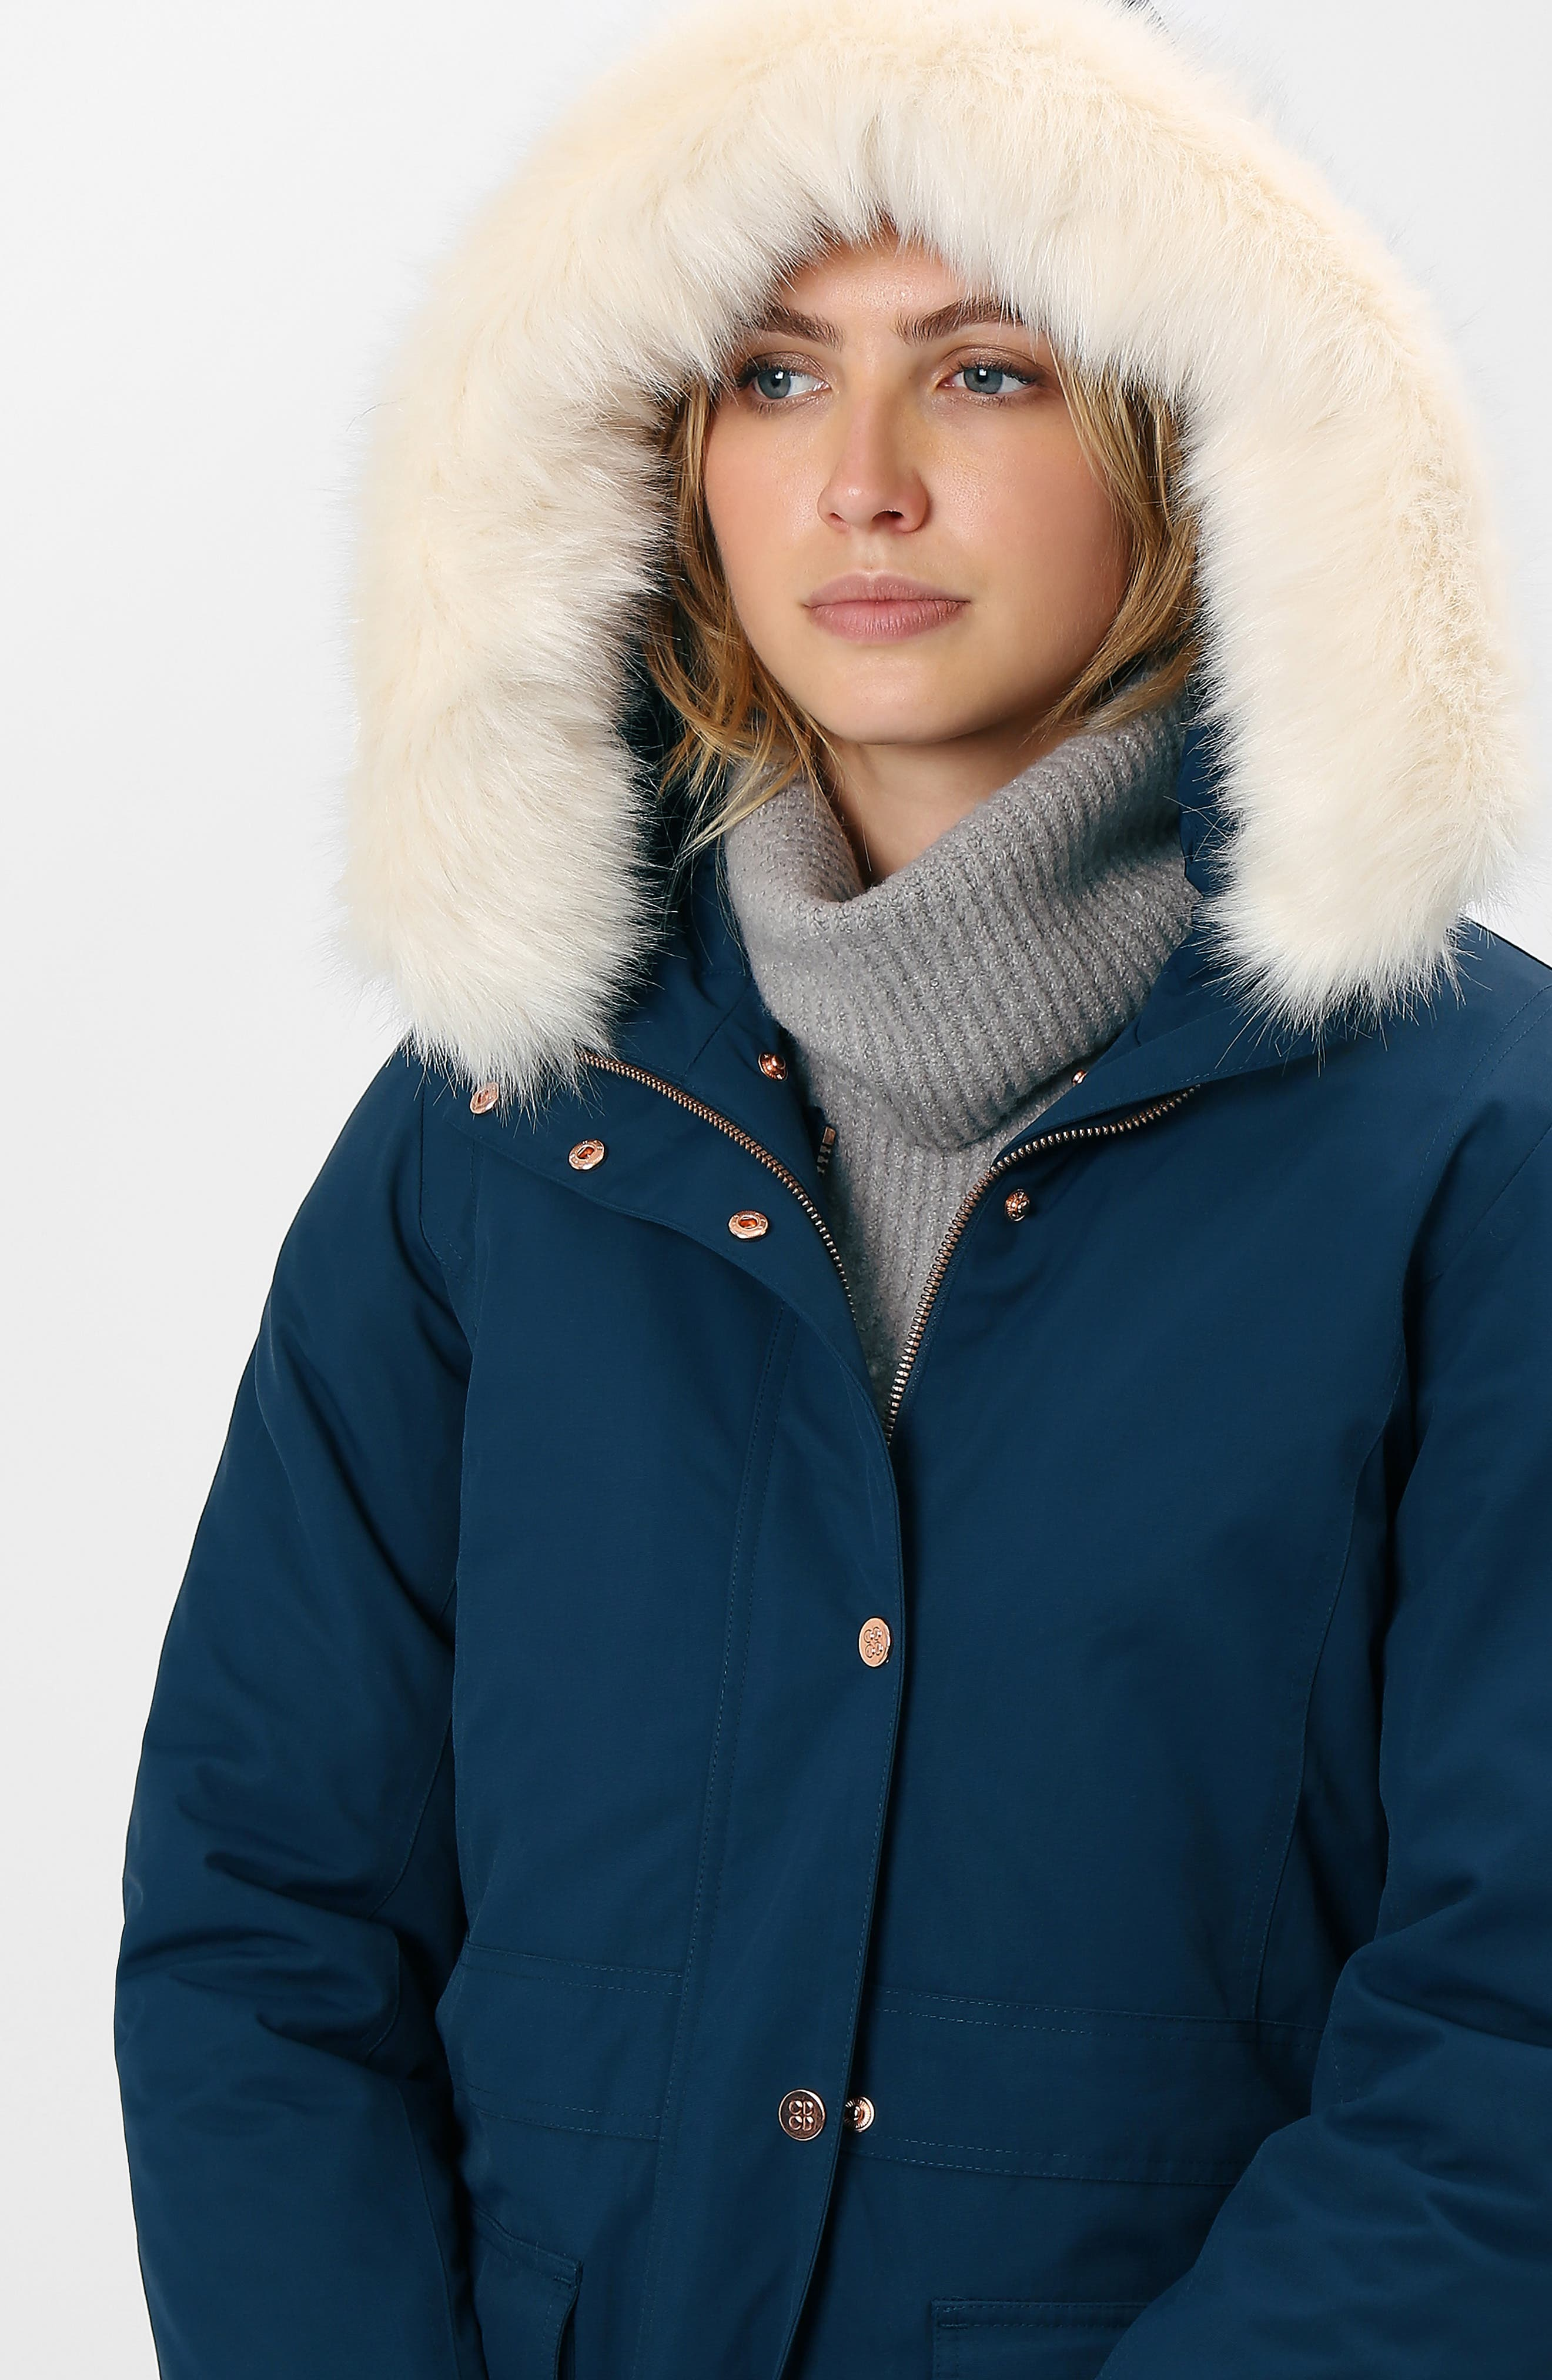 Highlands Three-In-One Faux Fur & Faux Shearling Coat,                             Alternate thumbnail 7, color,                             BEETLE BLUE